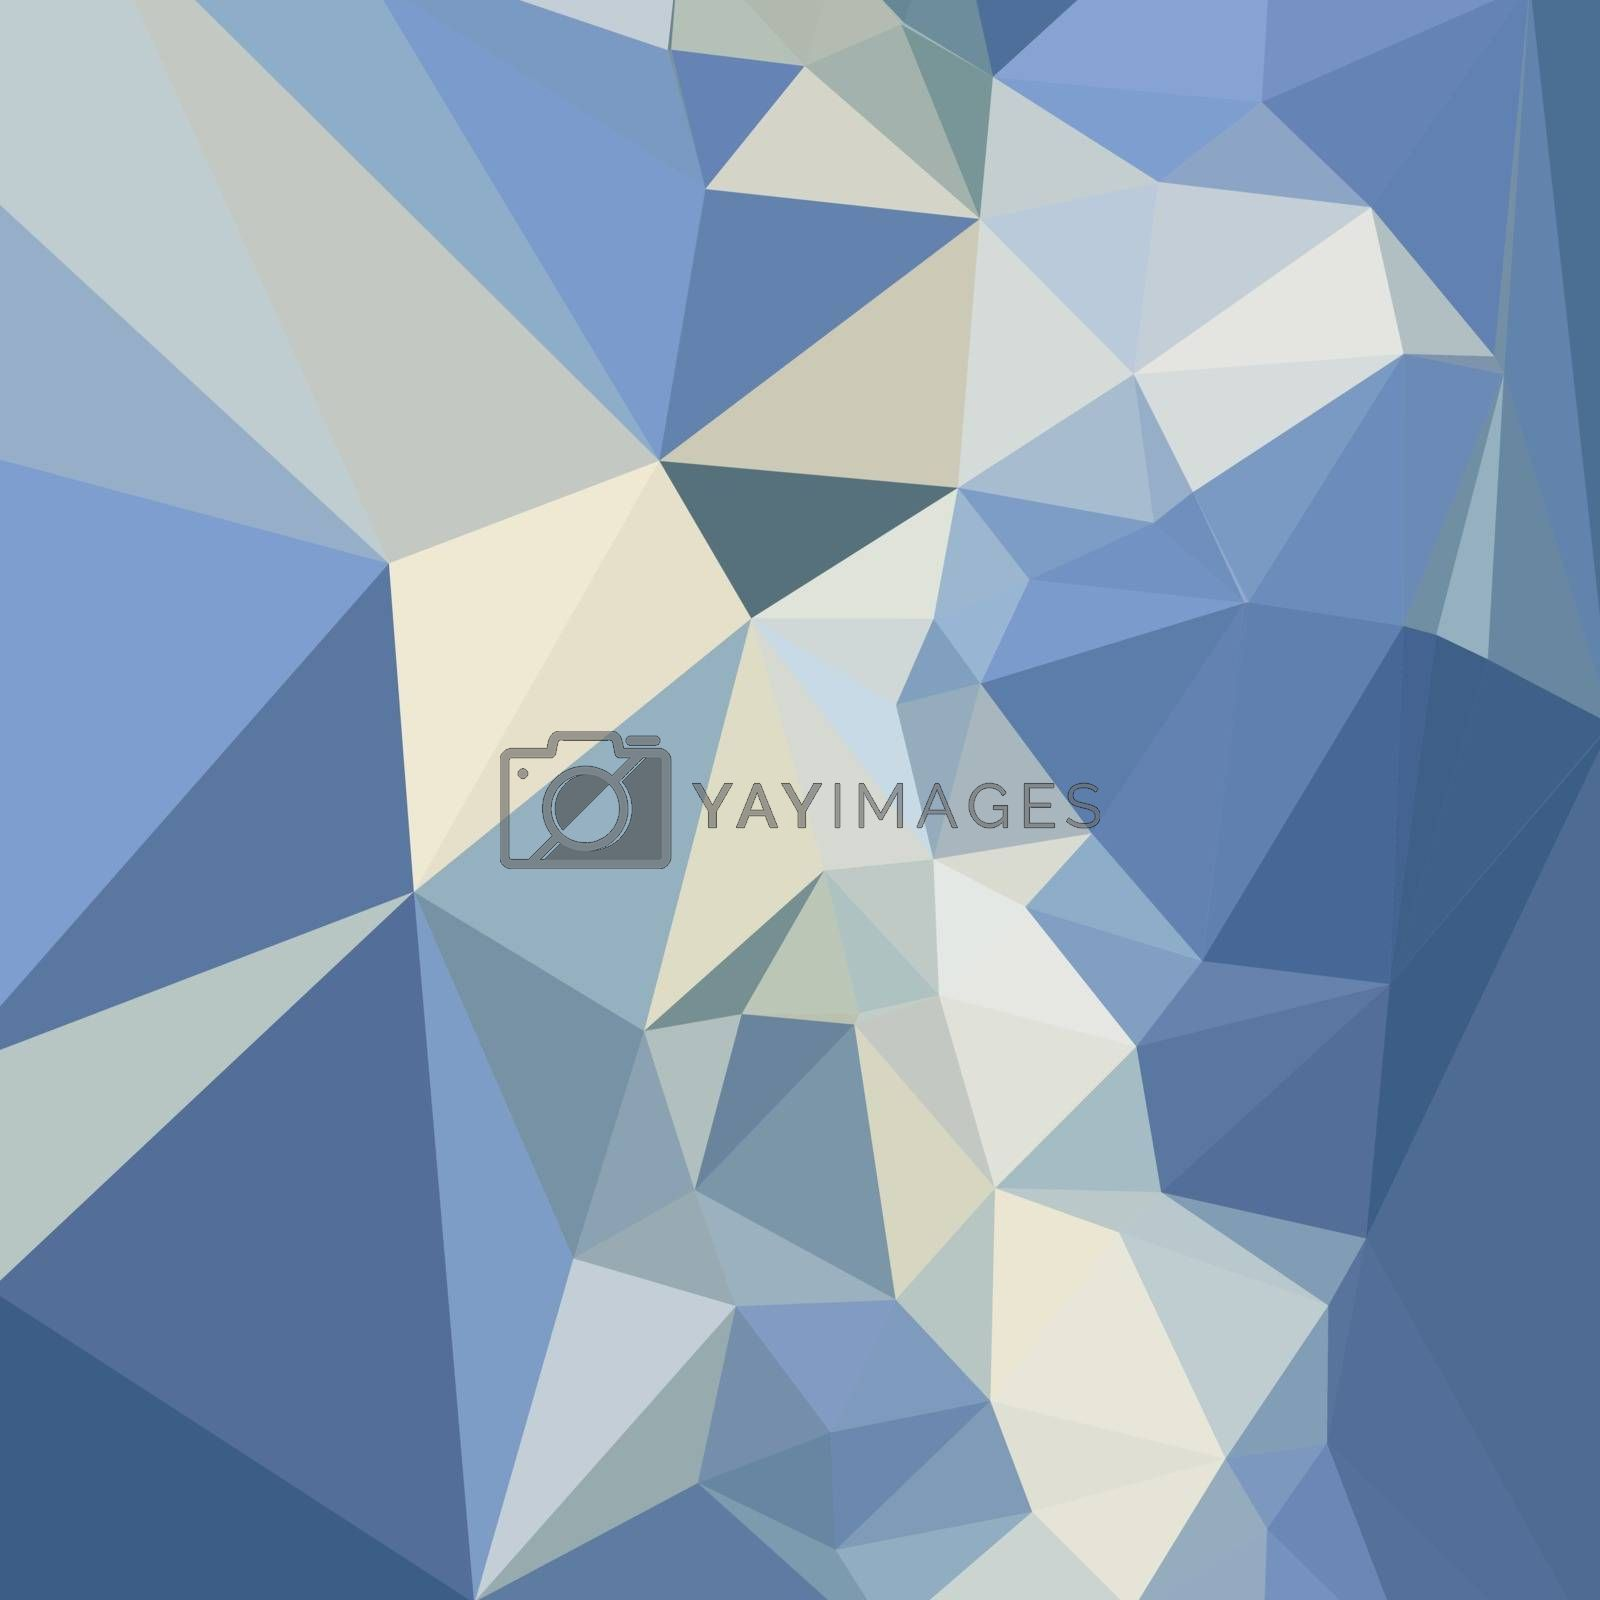 Low polygon style illustration of a columbia blue abstract geometric background.